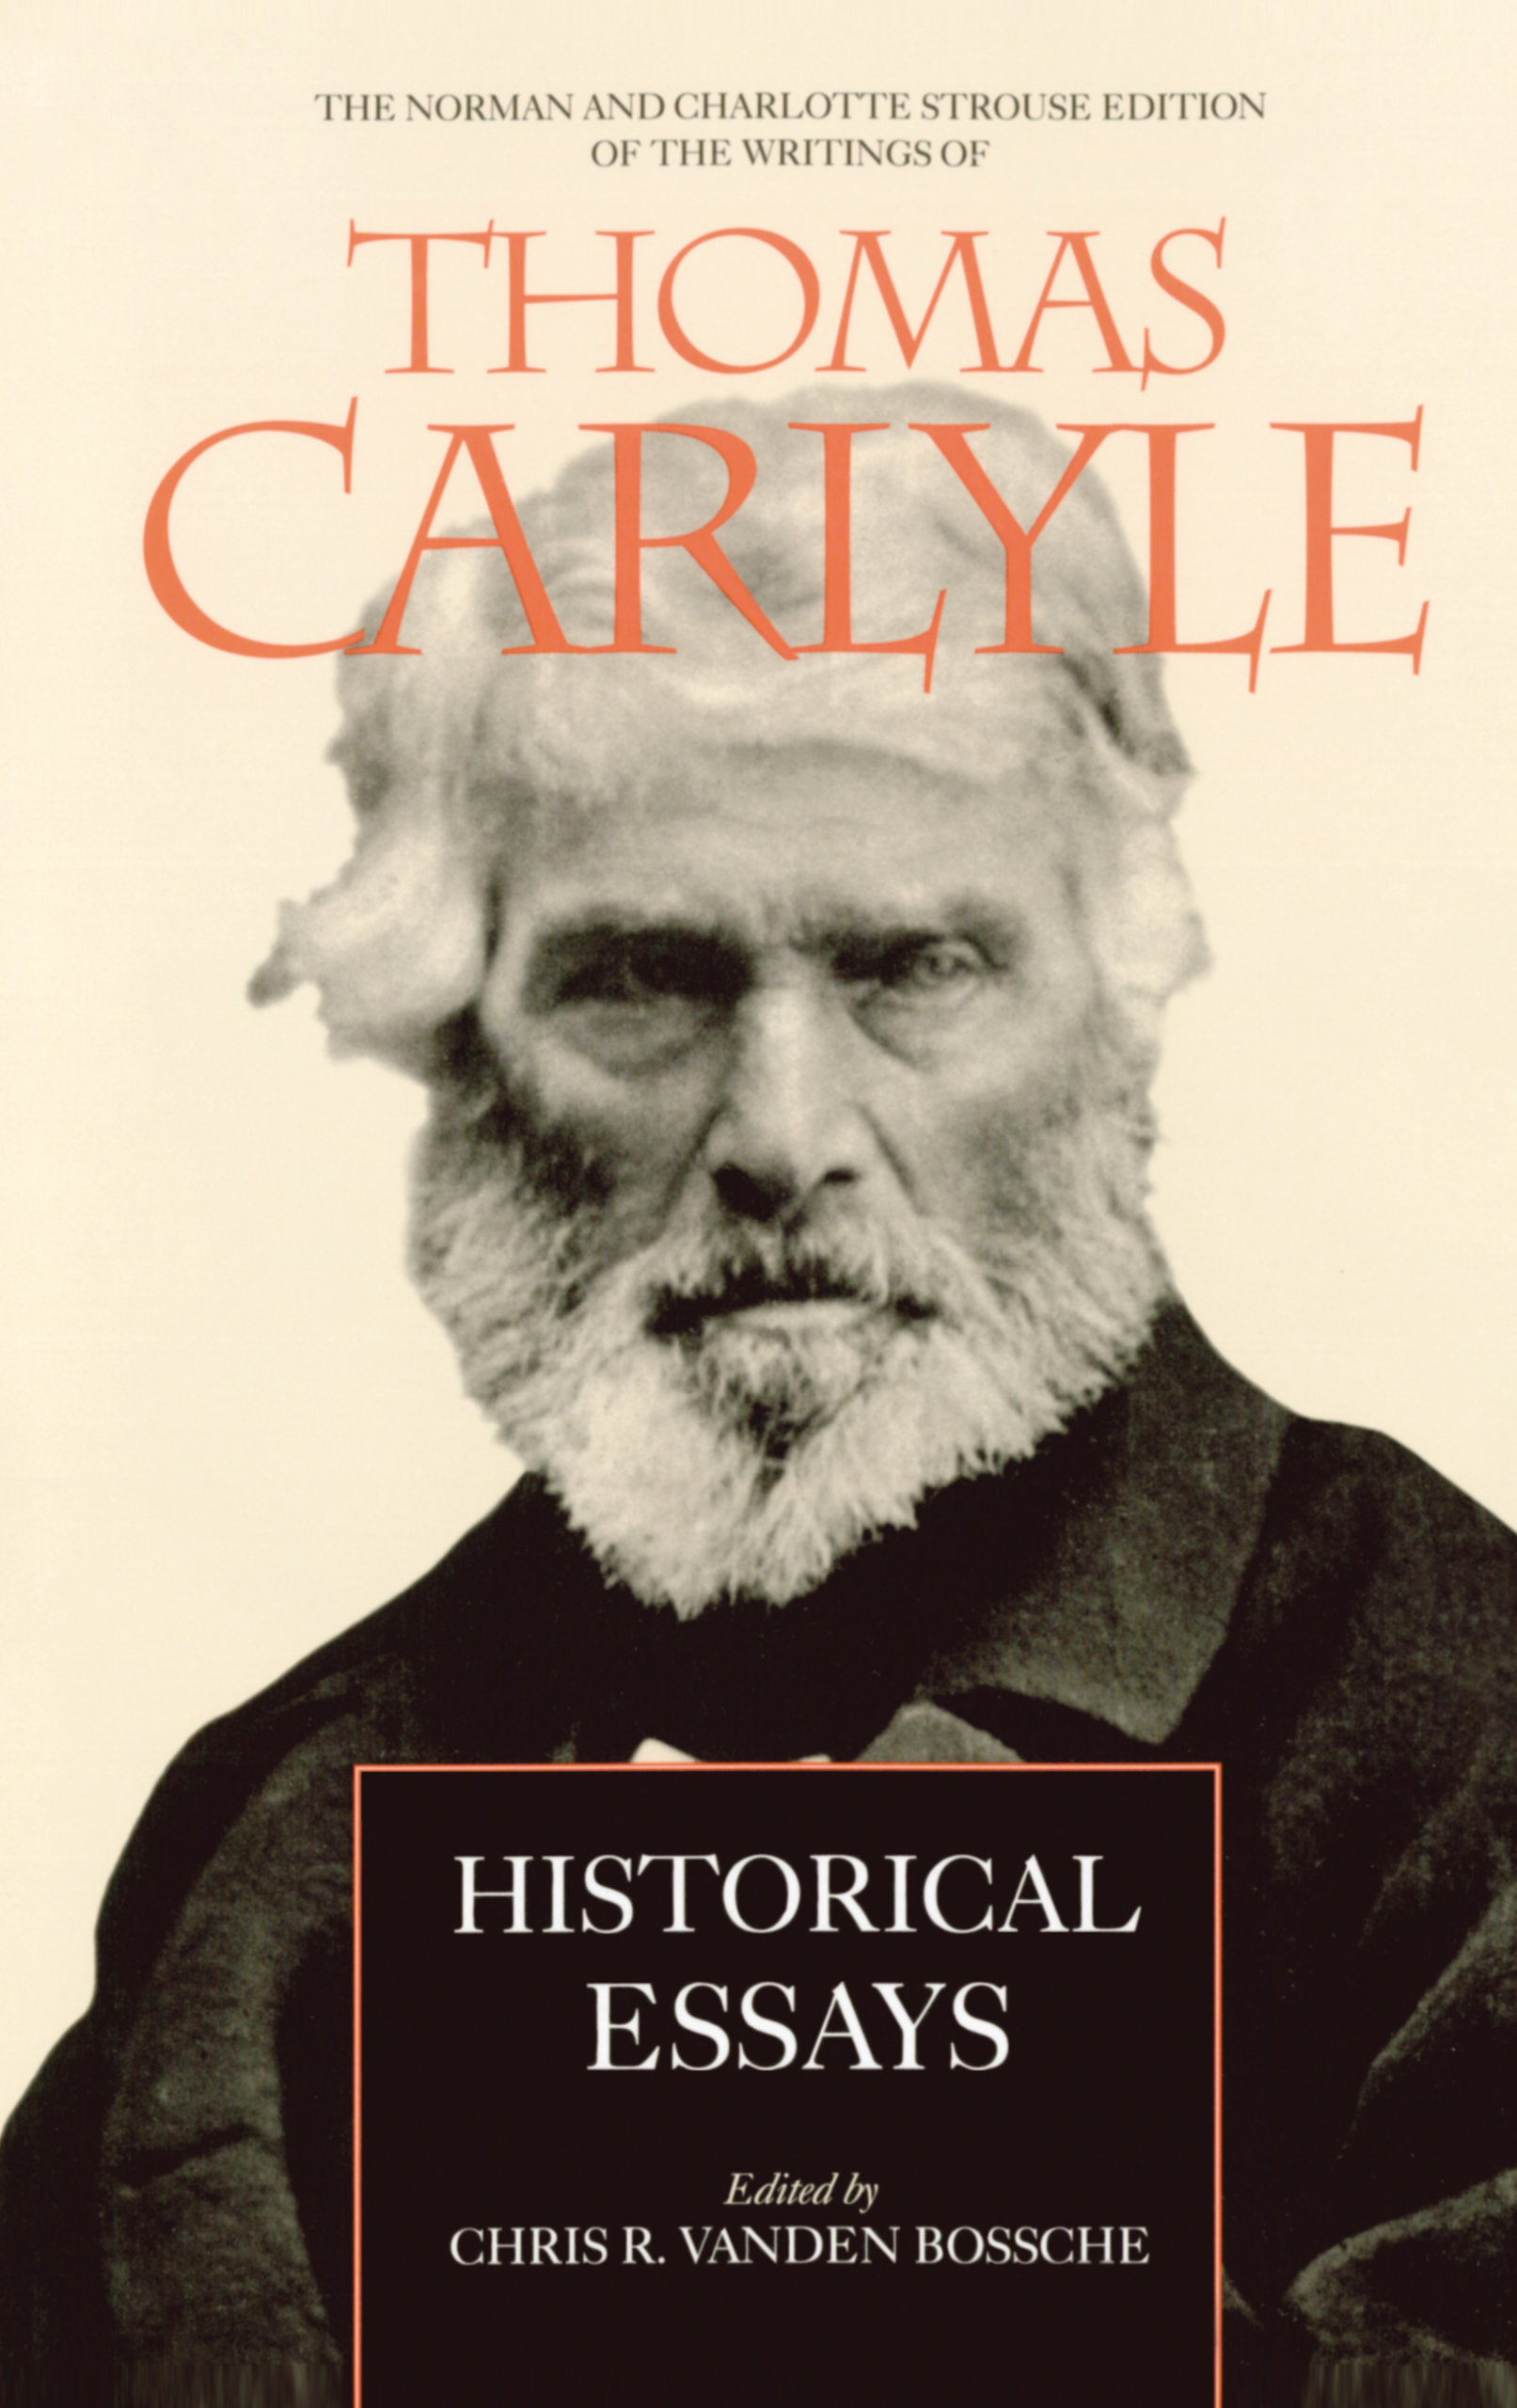 carlyle critical essay miscellaneous thomas works Critical and miscellaneous essays by thomas carlyle  are you sure you want to remove critical and miscellaneous essays from your list  add works page open .